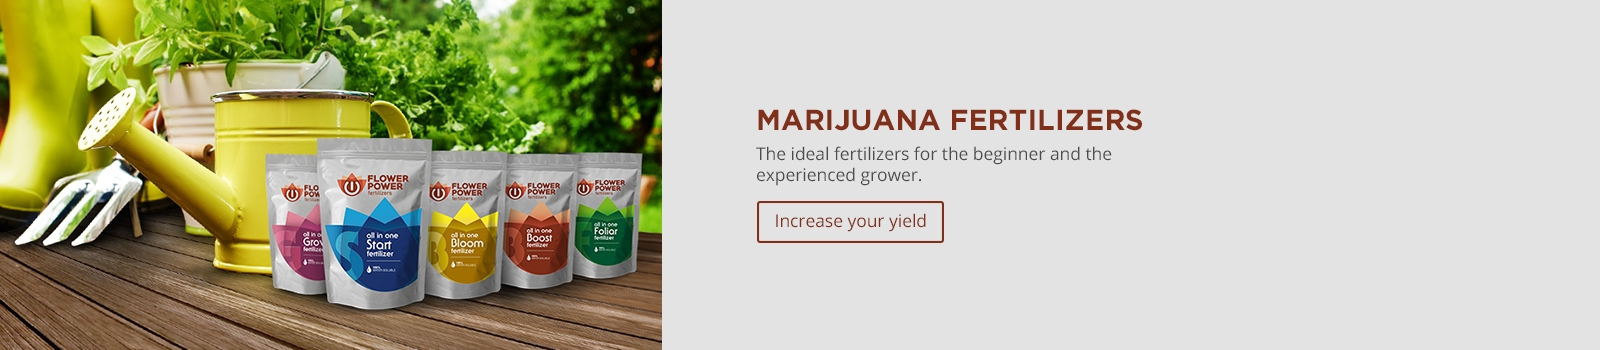 Marijuana Fertilizers